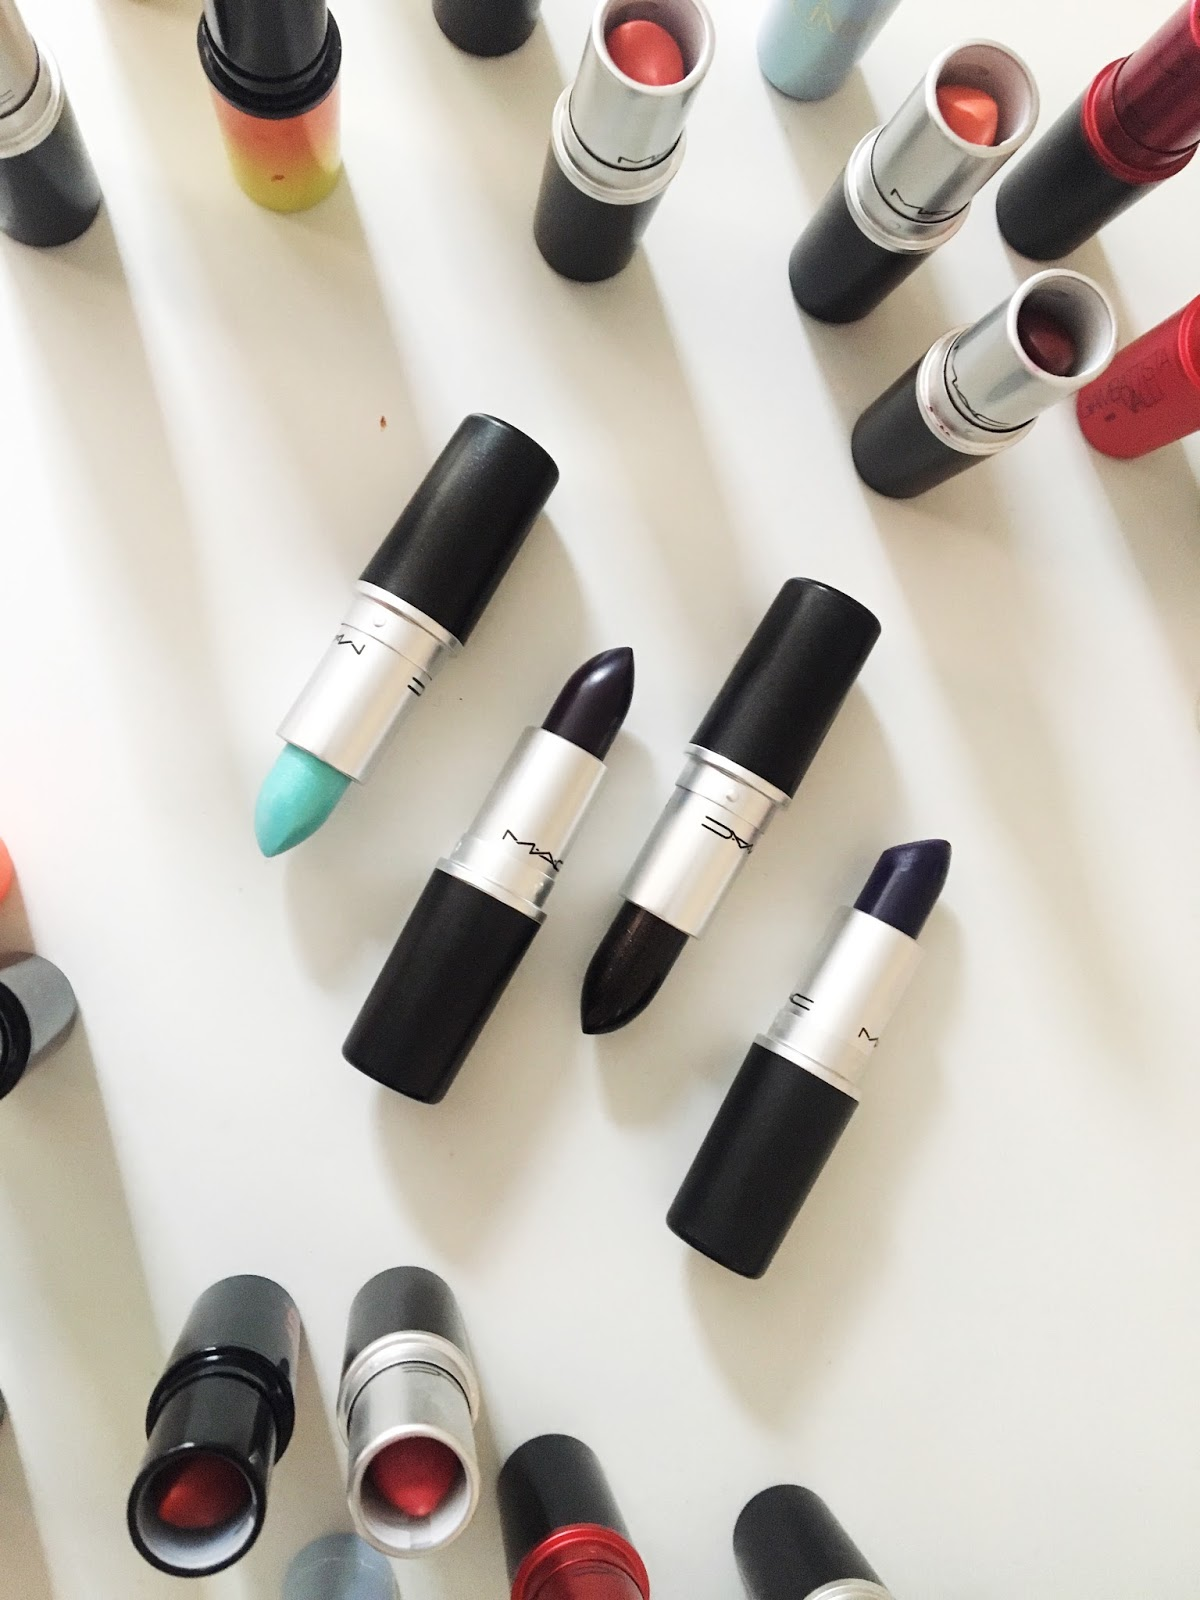 Dark mac lipsticks